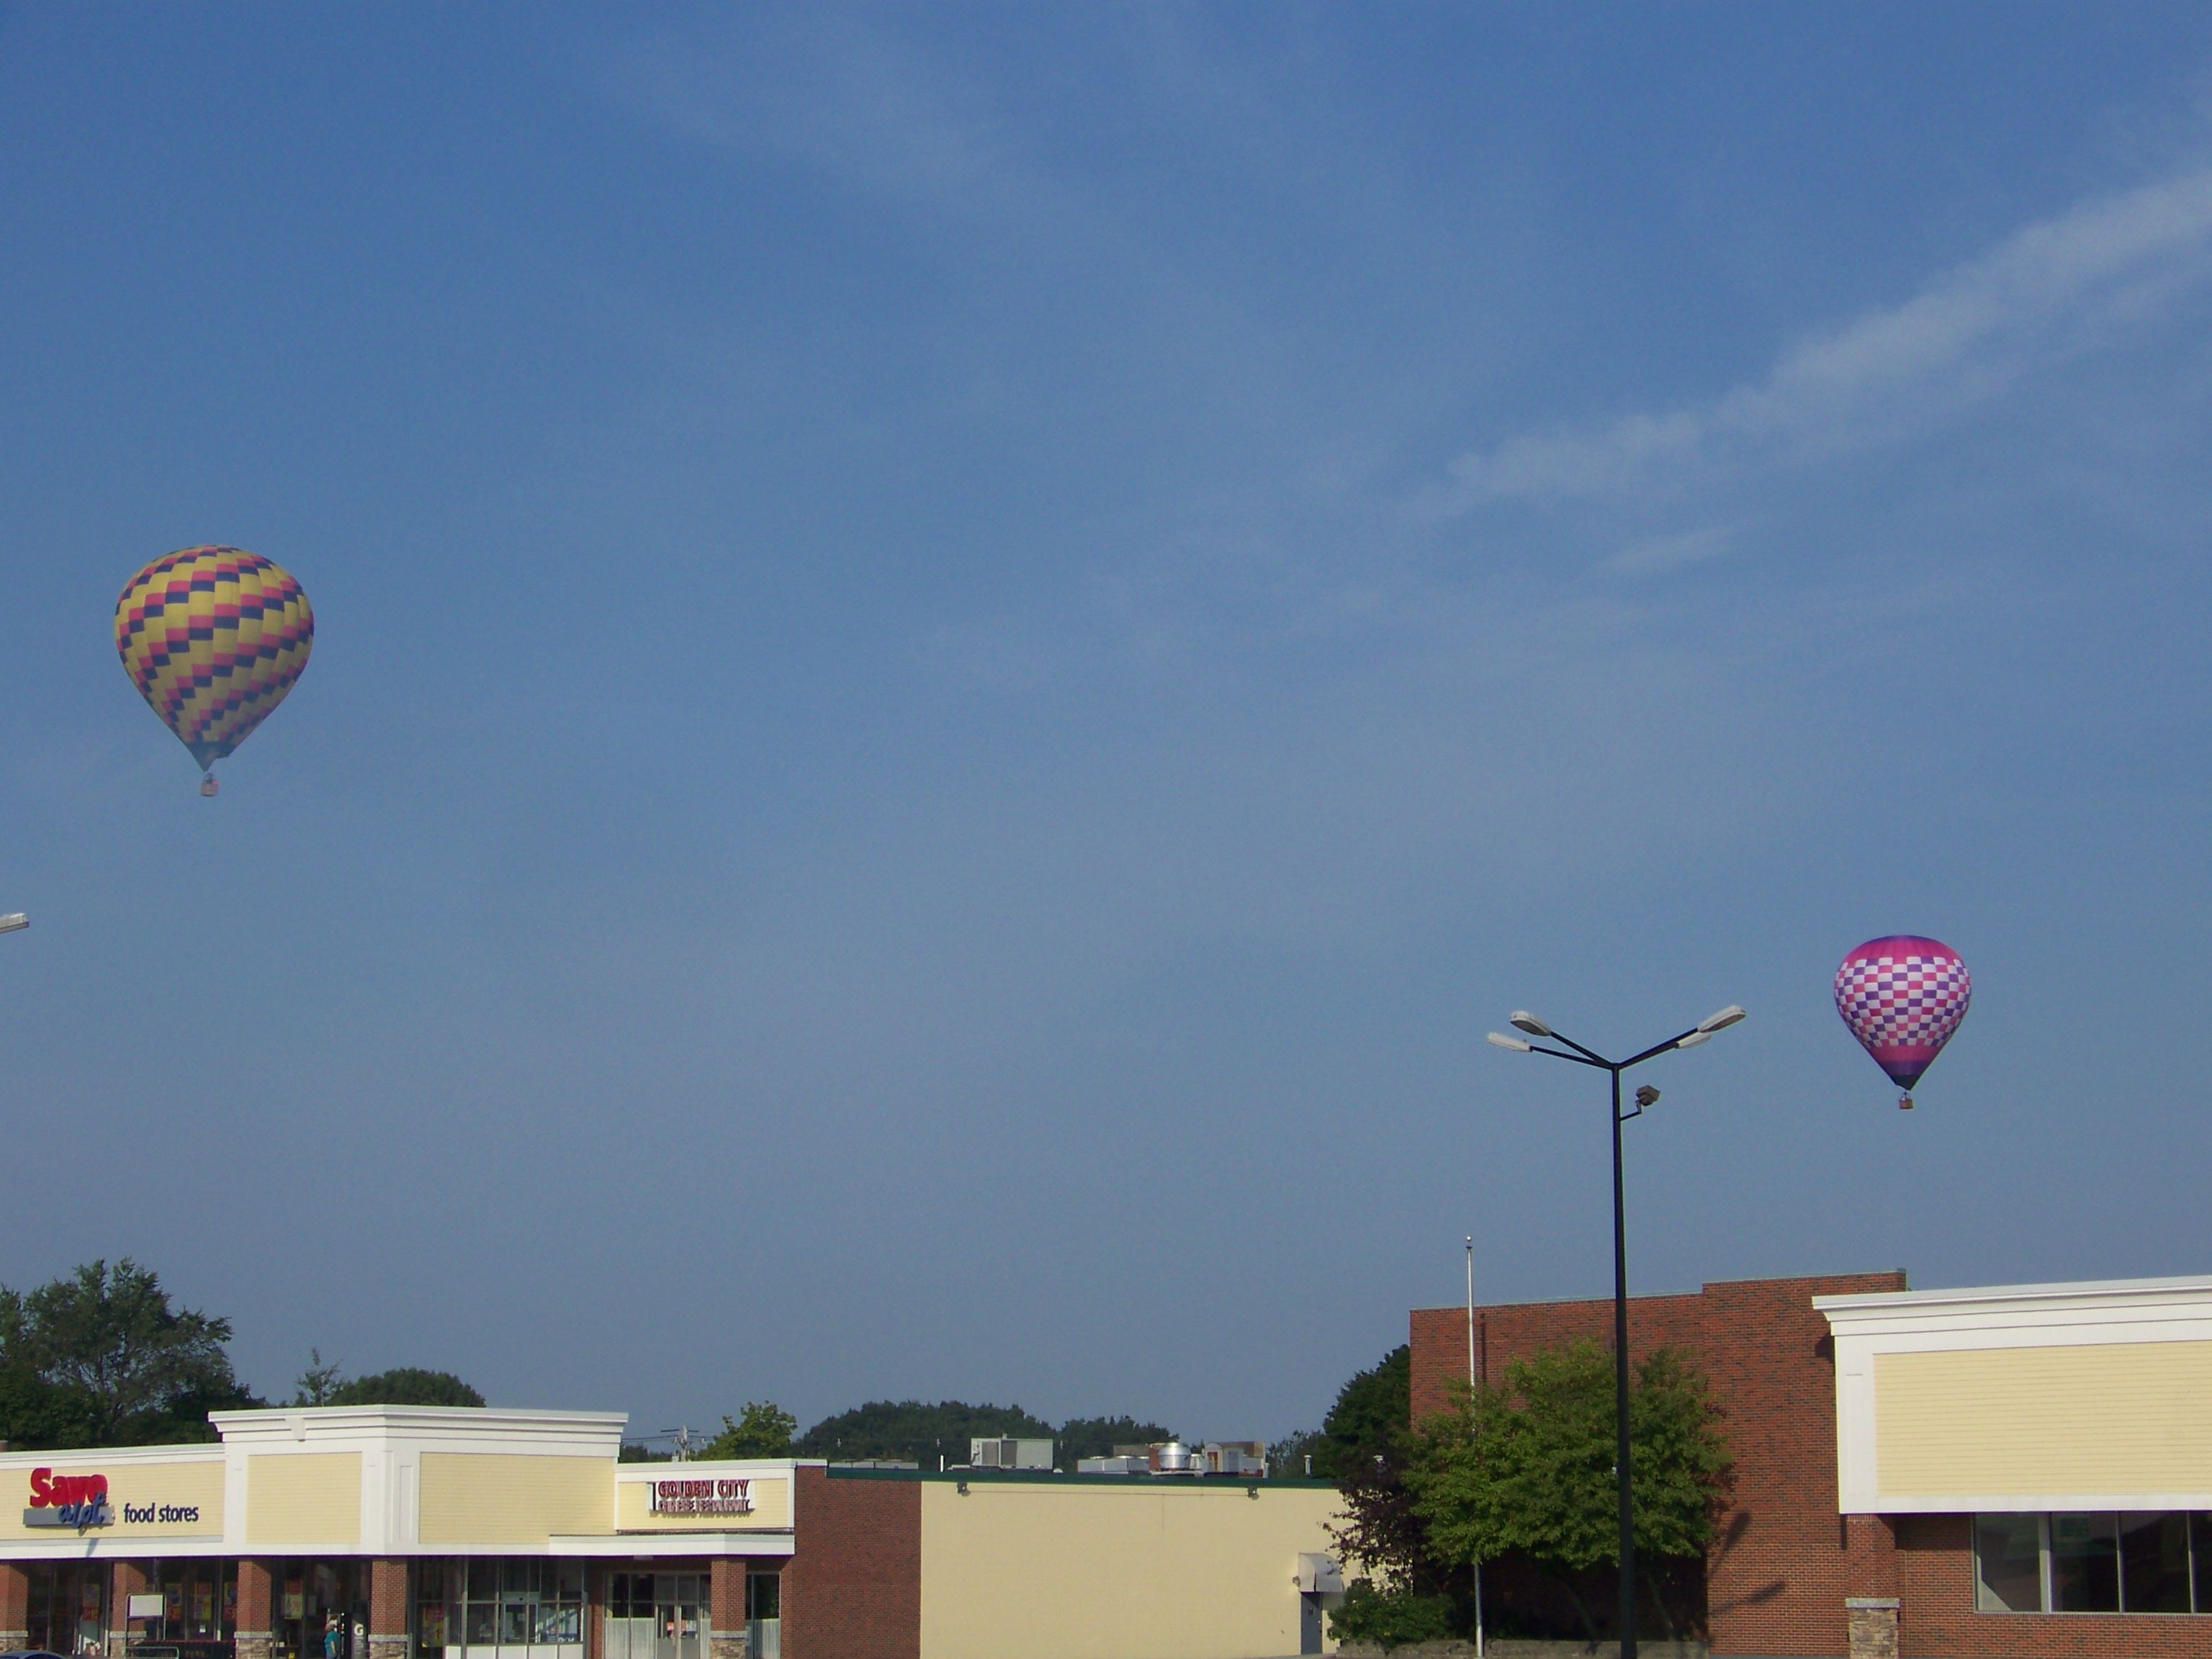 Hot Air Balloons float around over the city of Lewiston